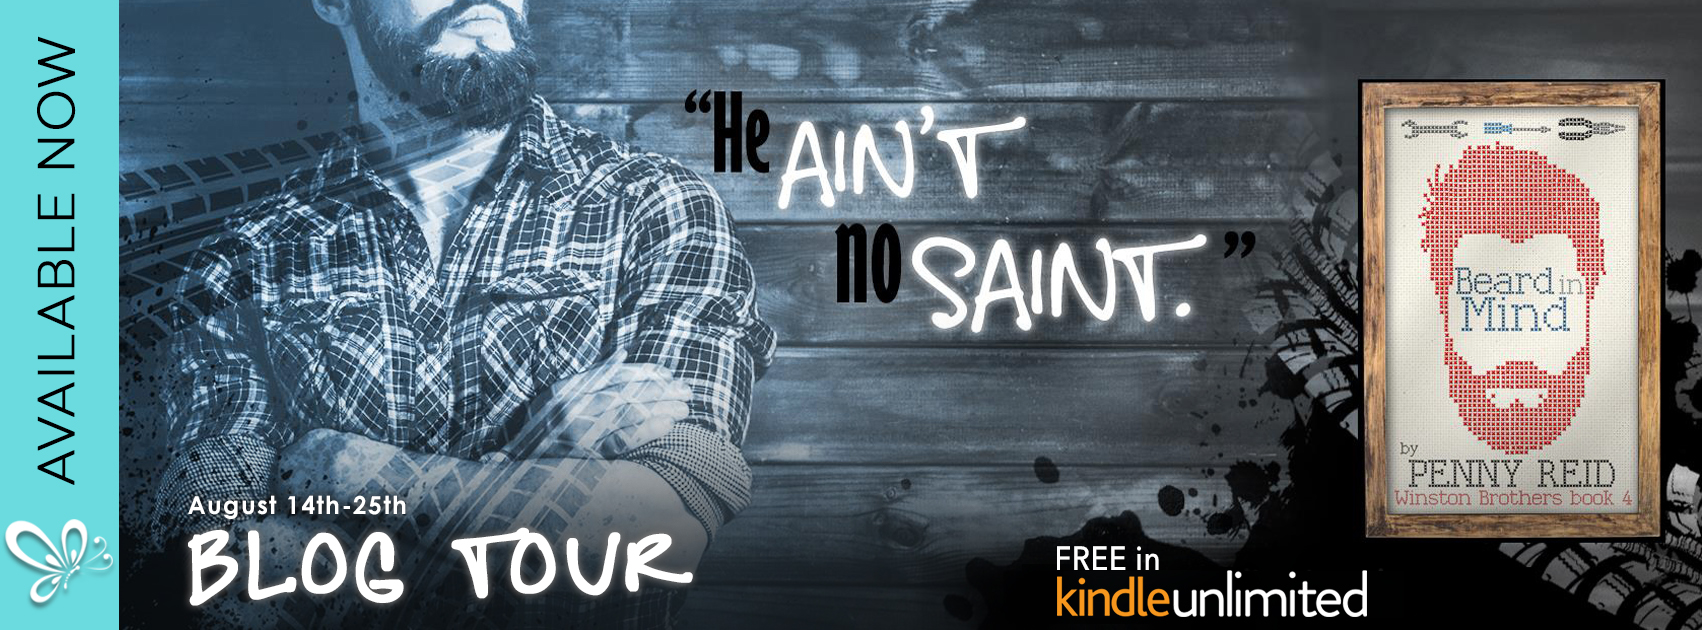 Blog Tour with Review and Giveaway:  Beard in Mind (Winston Brothers #4) by Penny Reid